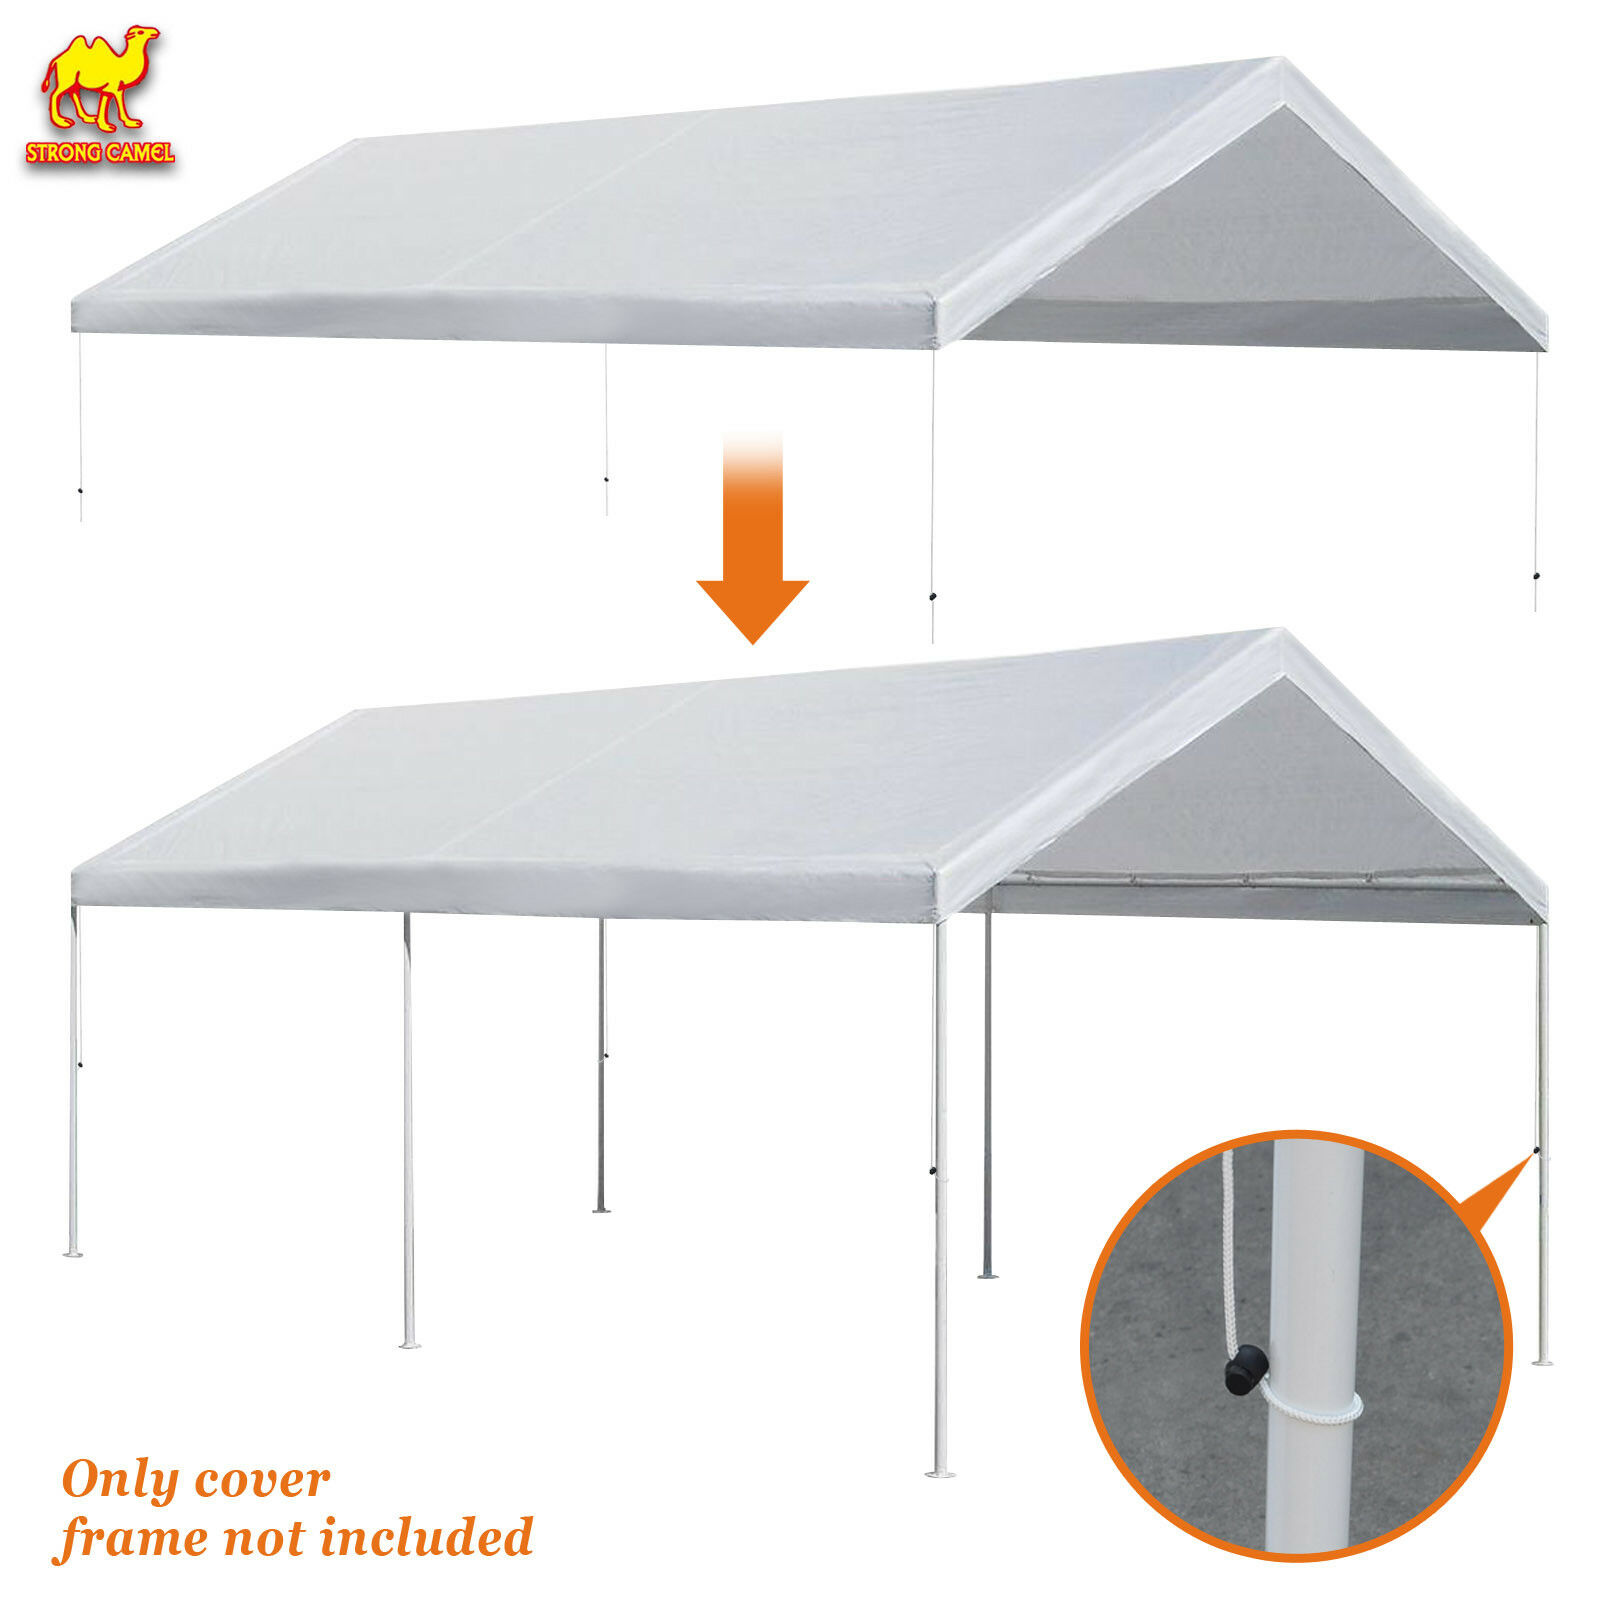 10x20' Carport Replacment Canopy Tent Top Garage Cover w Bal